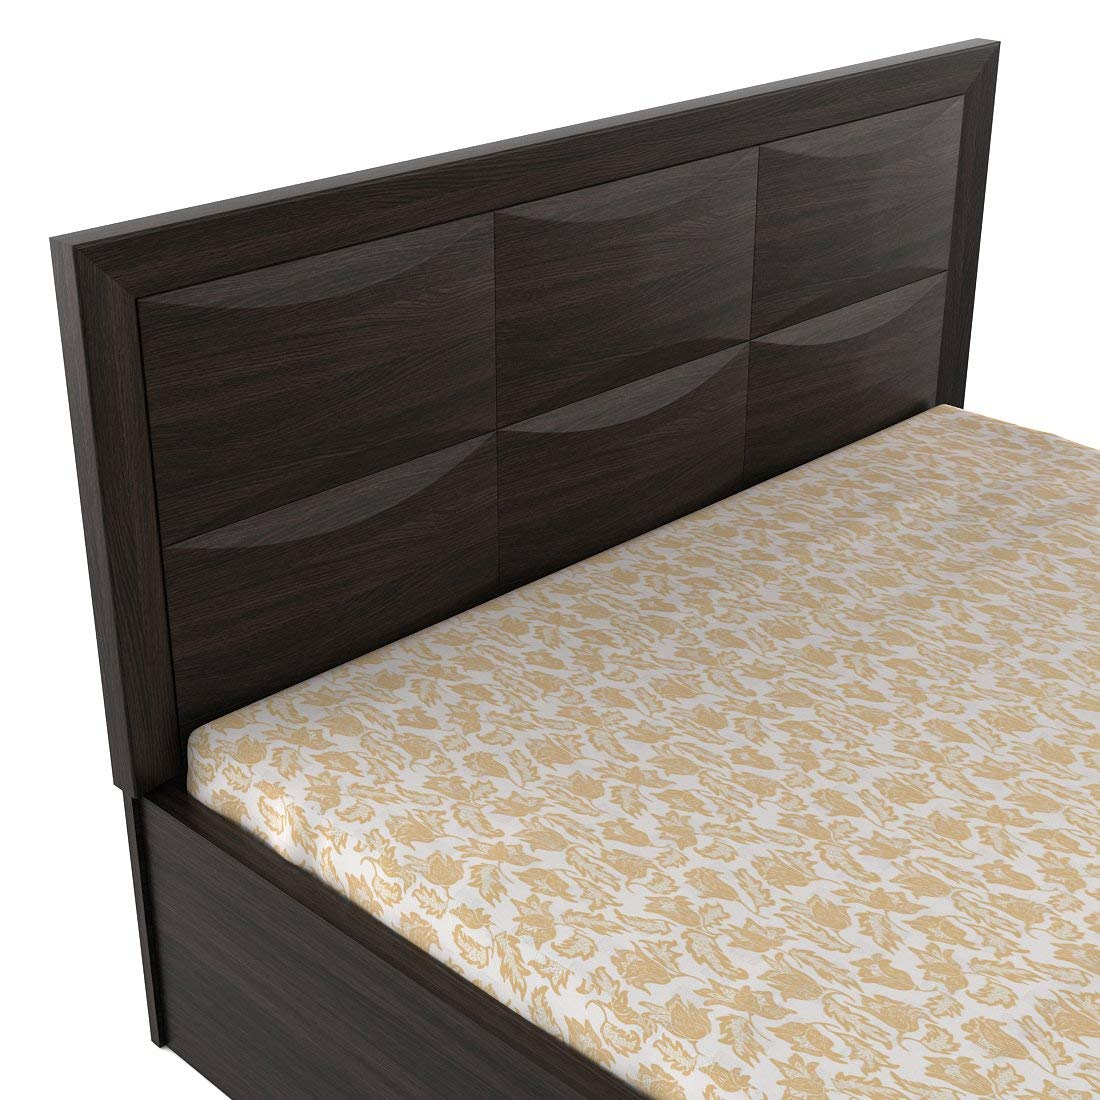 Buy Kosmo Helix King Size Bed With Lift On Storage In